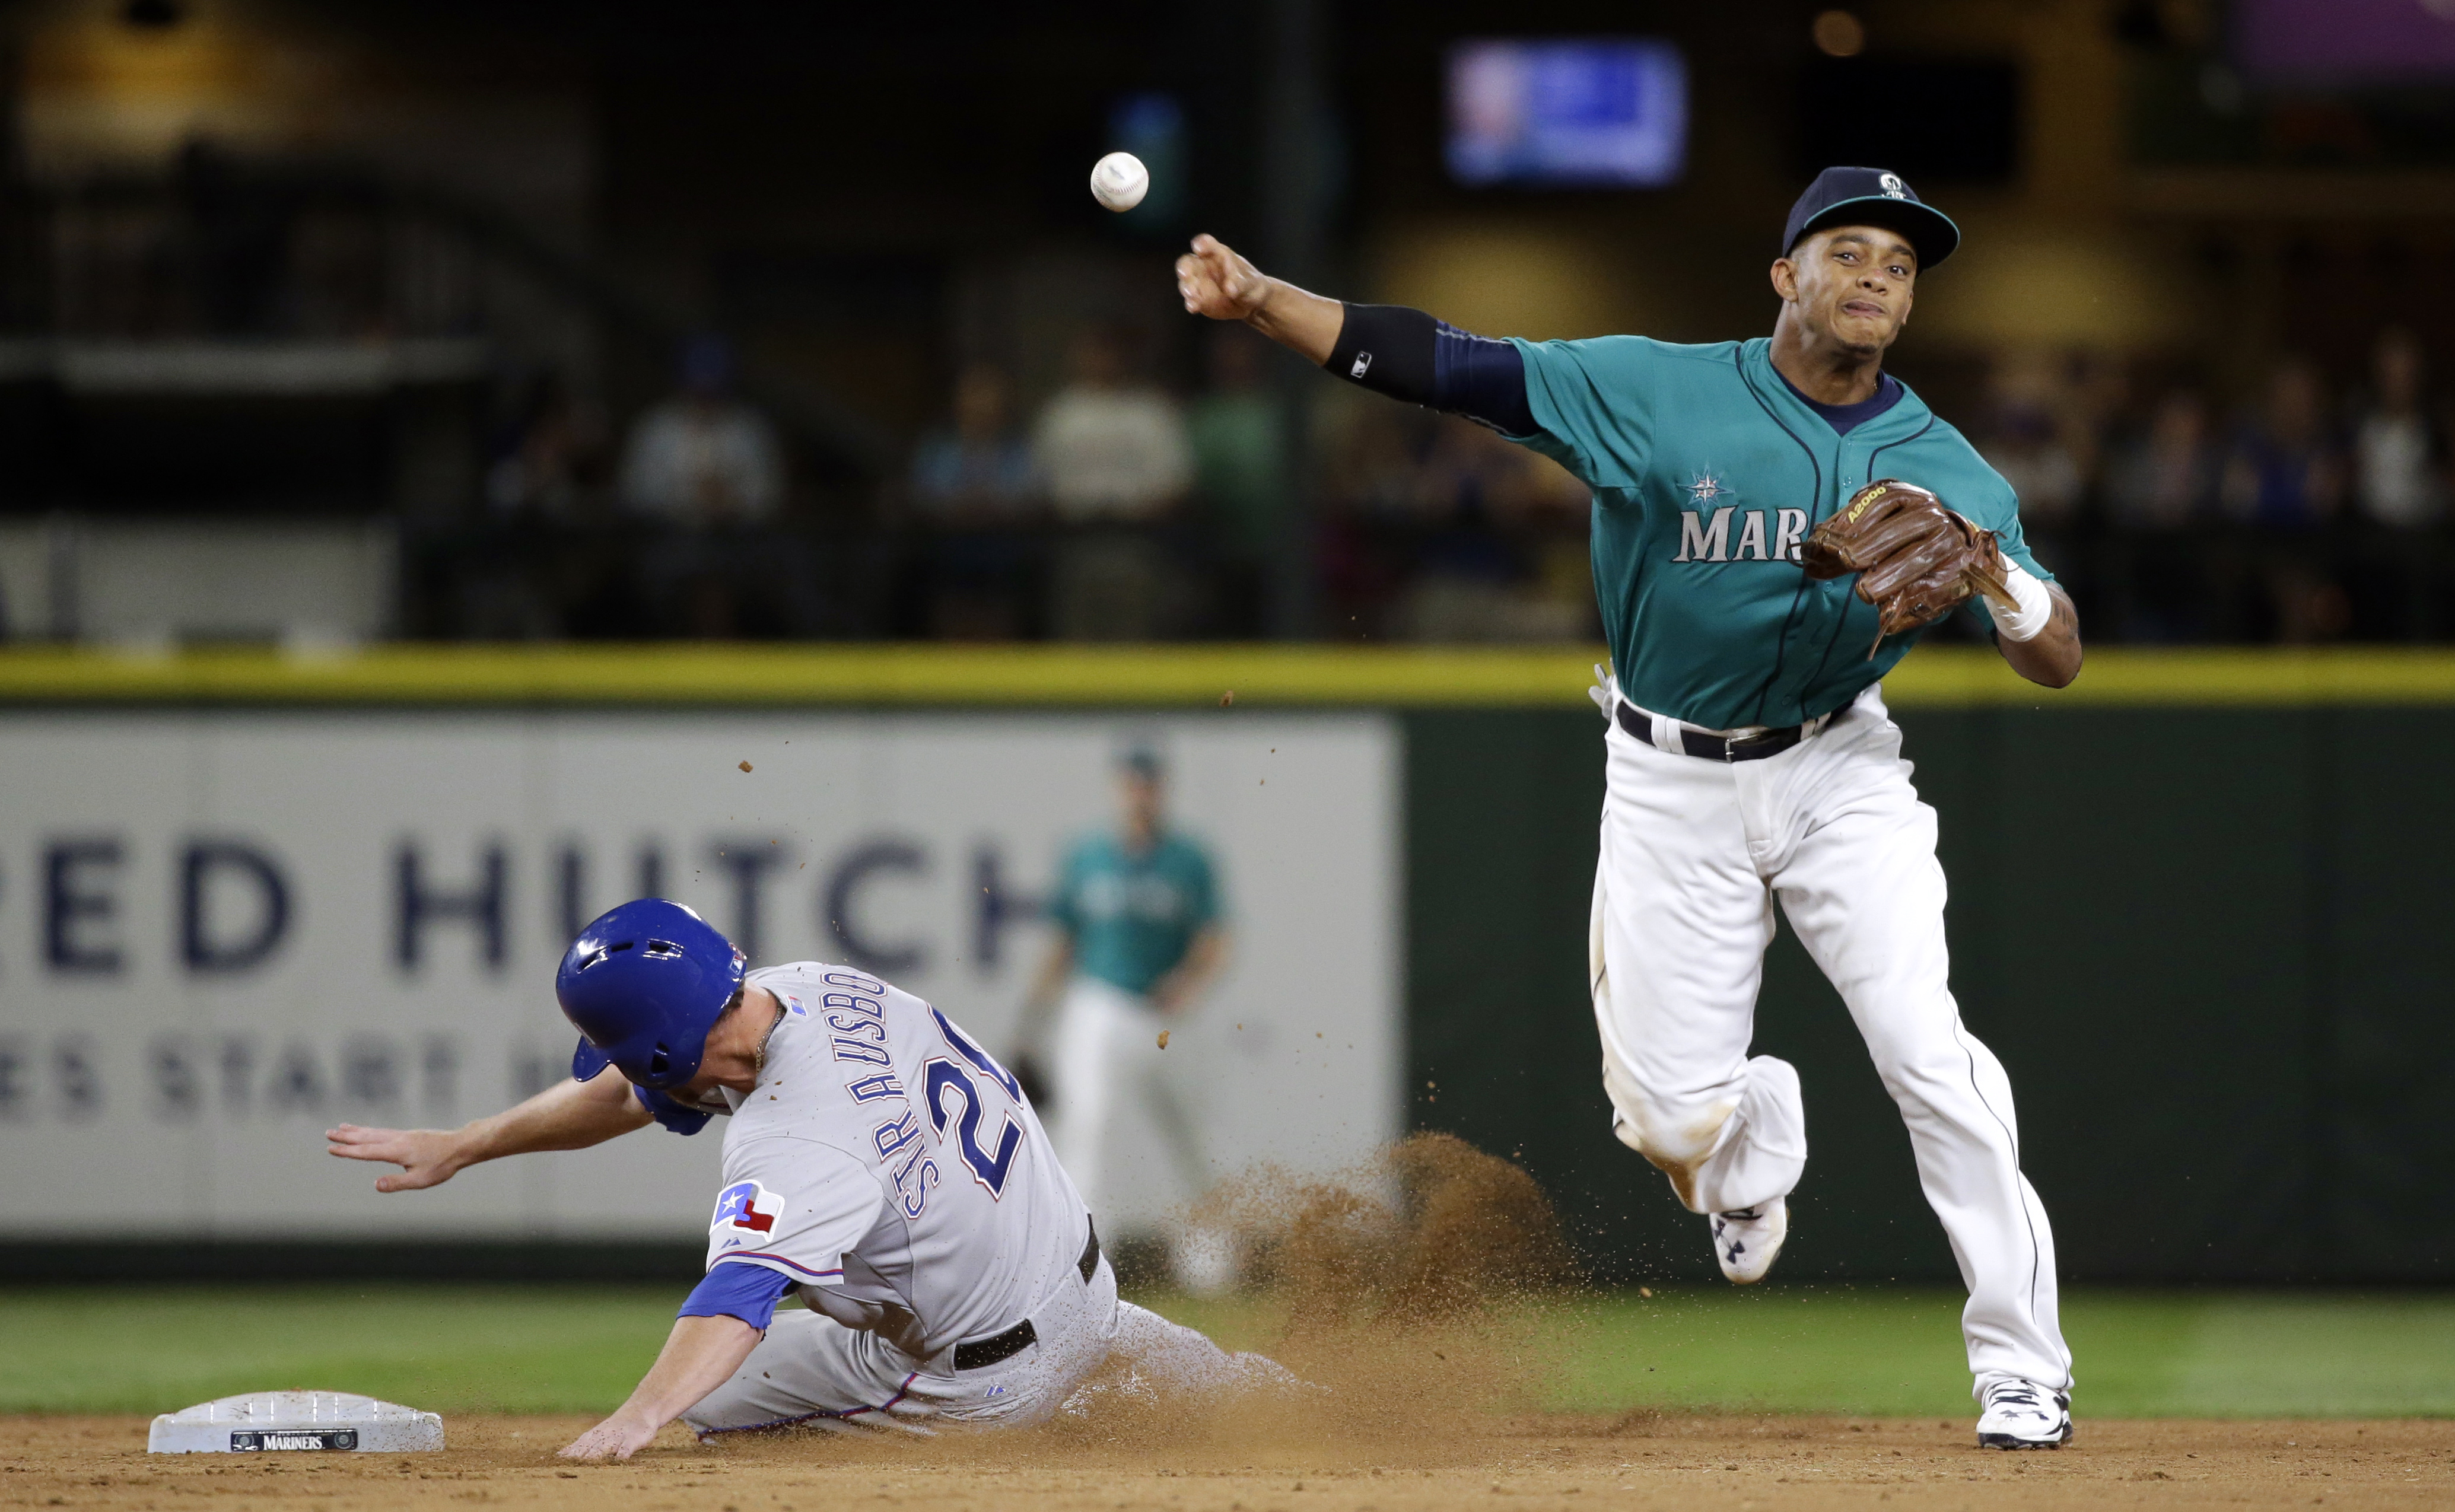 Seattle Mariners shortstop Ketel Marte, right, throws to first after forcing out Texas Rangers' Ryan Strausborger at second base during the ninth inning of a baseball game Friday, Aug. 7, 2015, in Seattle. The Mariners won 4-3. (AP Photo/Elaine Thompson)